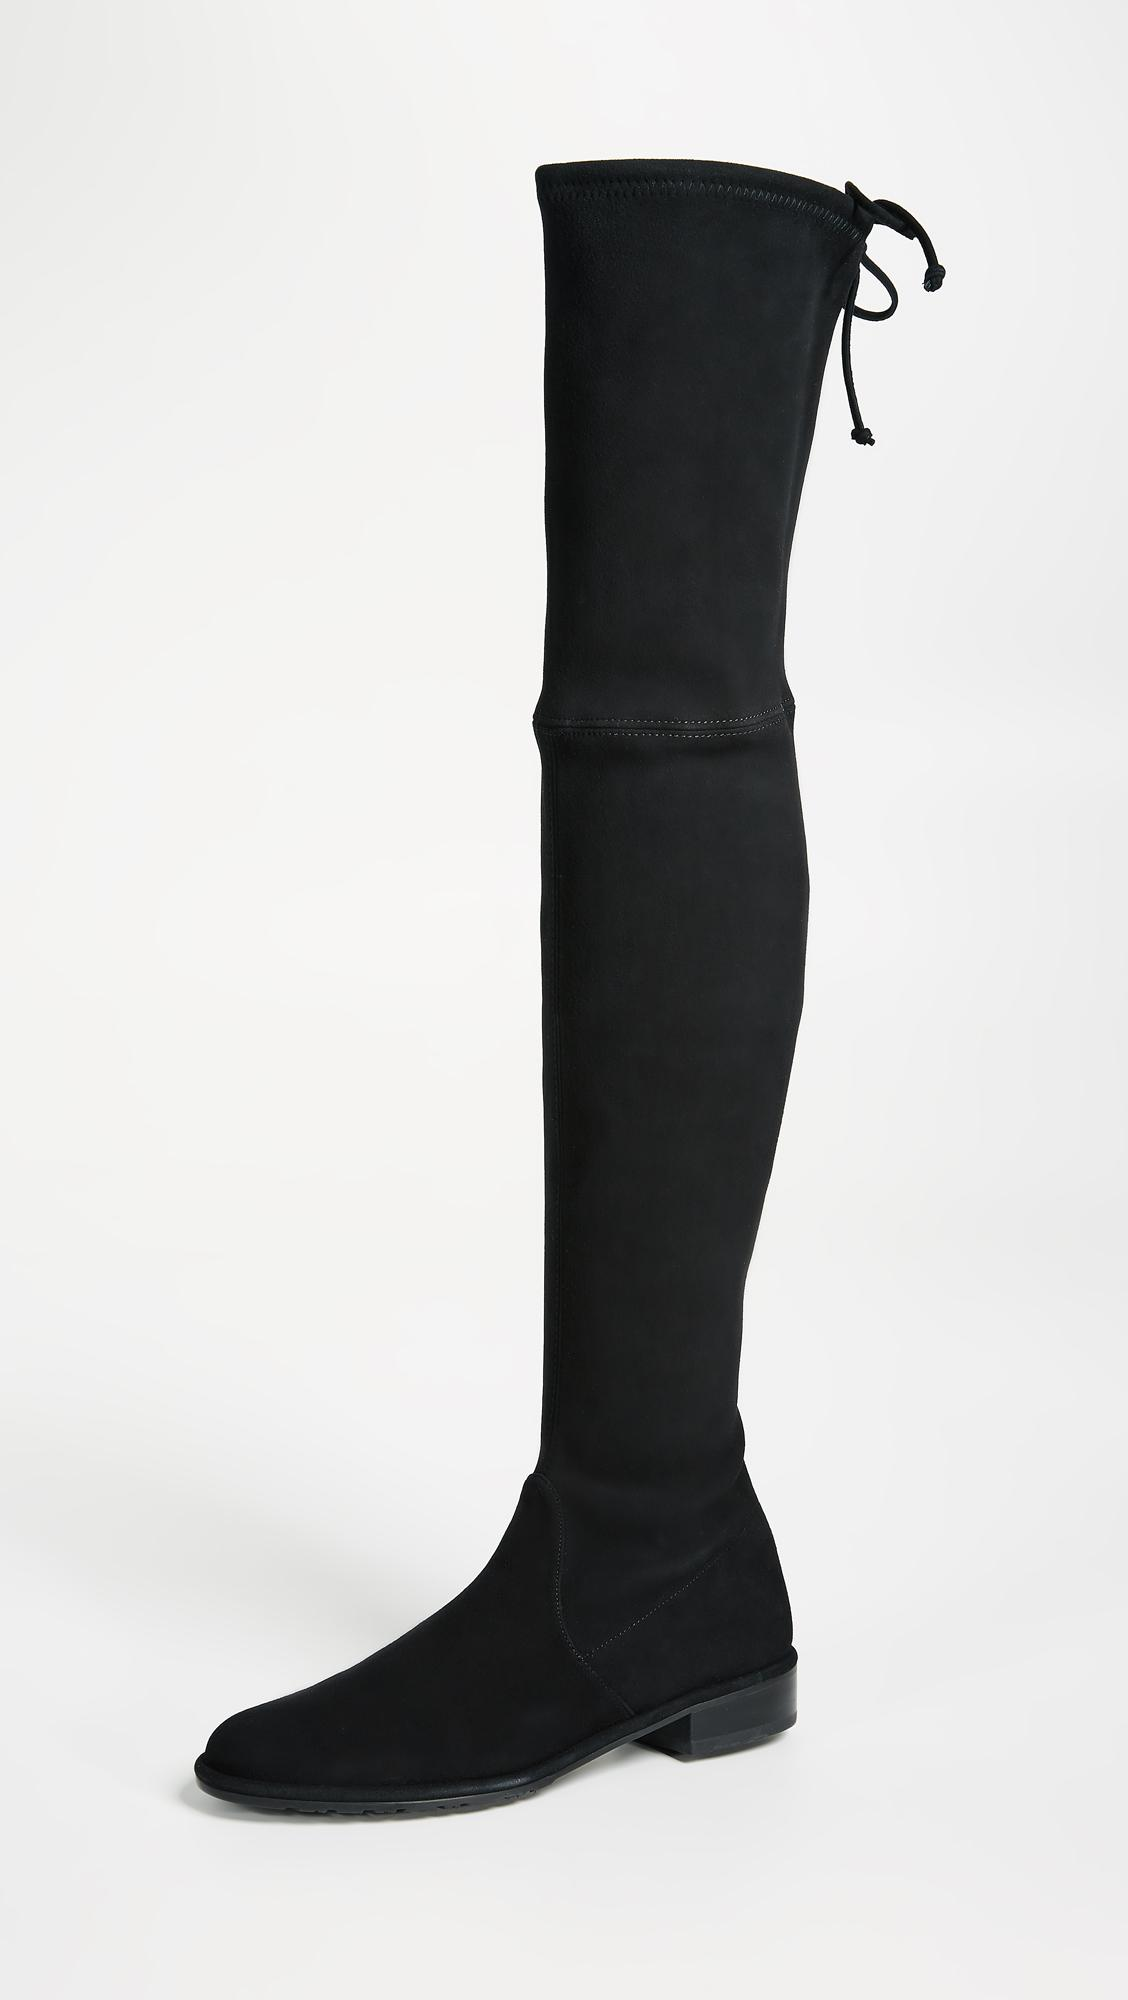 ad4820a540e Stuart Weitzman Lowland Over The Knee Boots in Black - Lyst